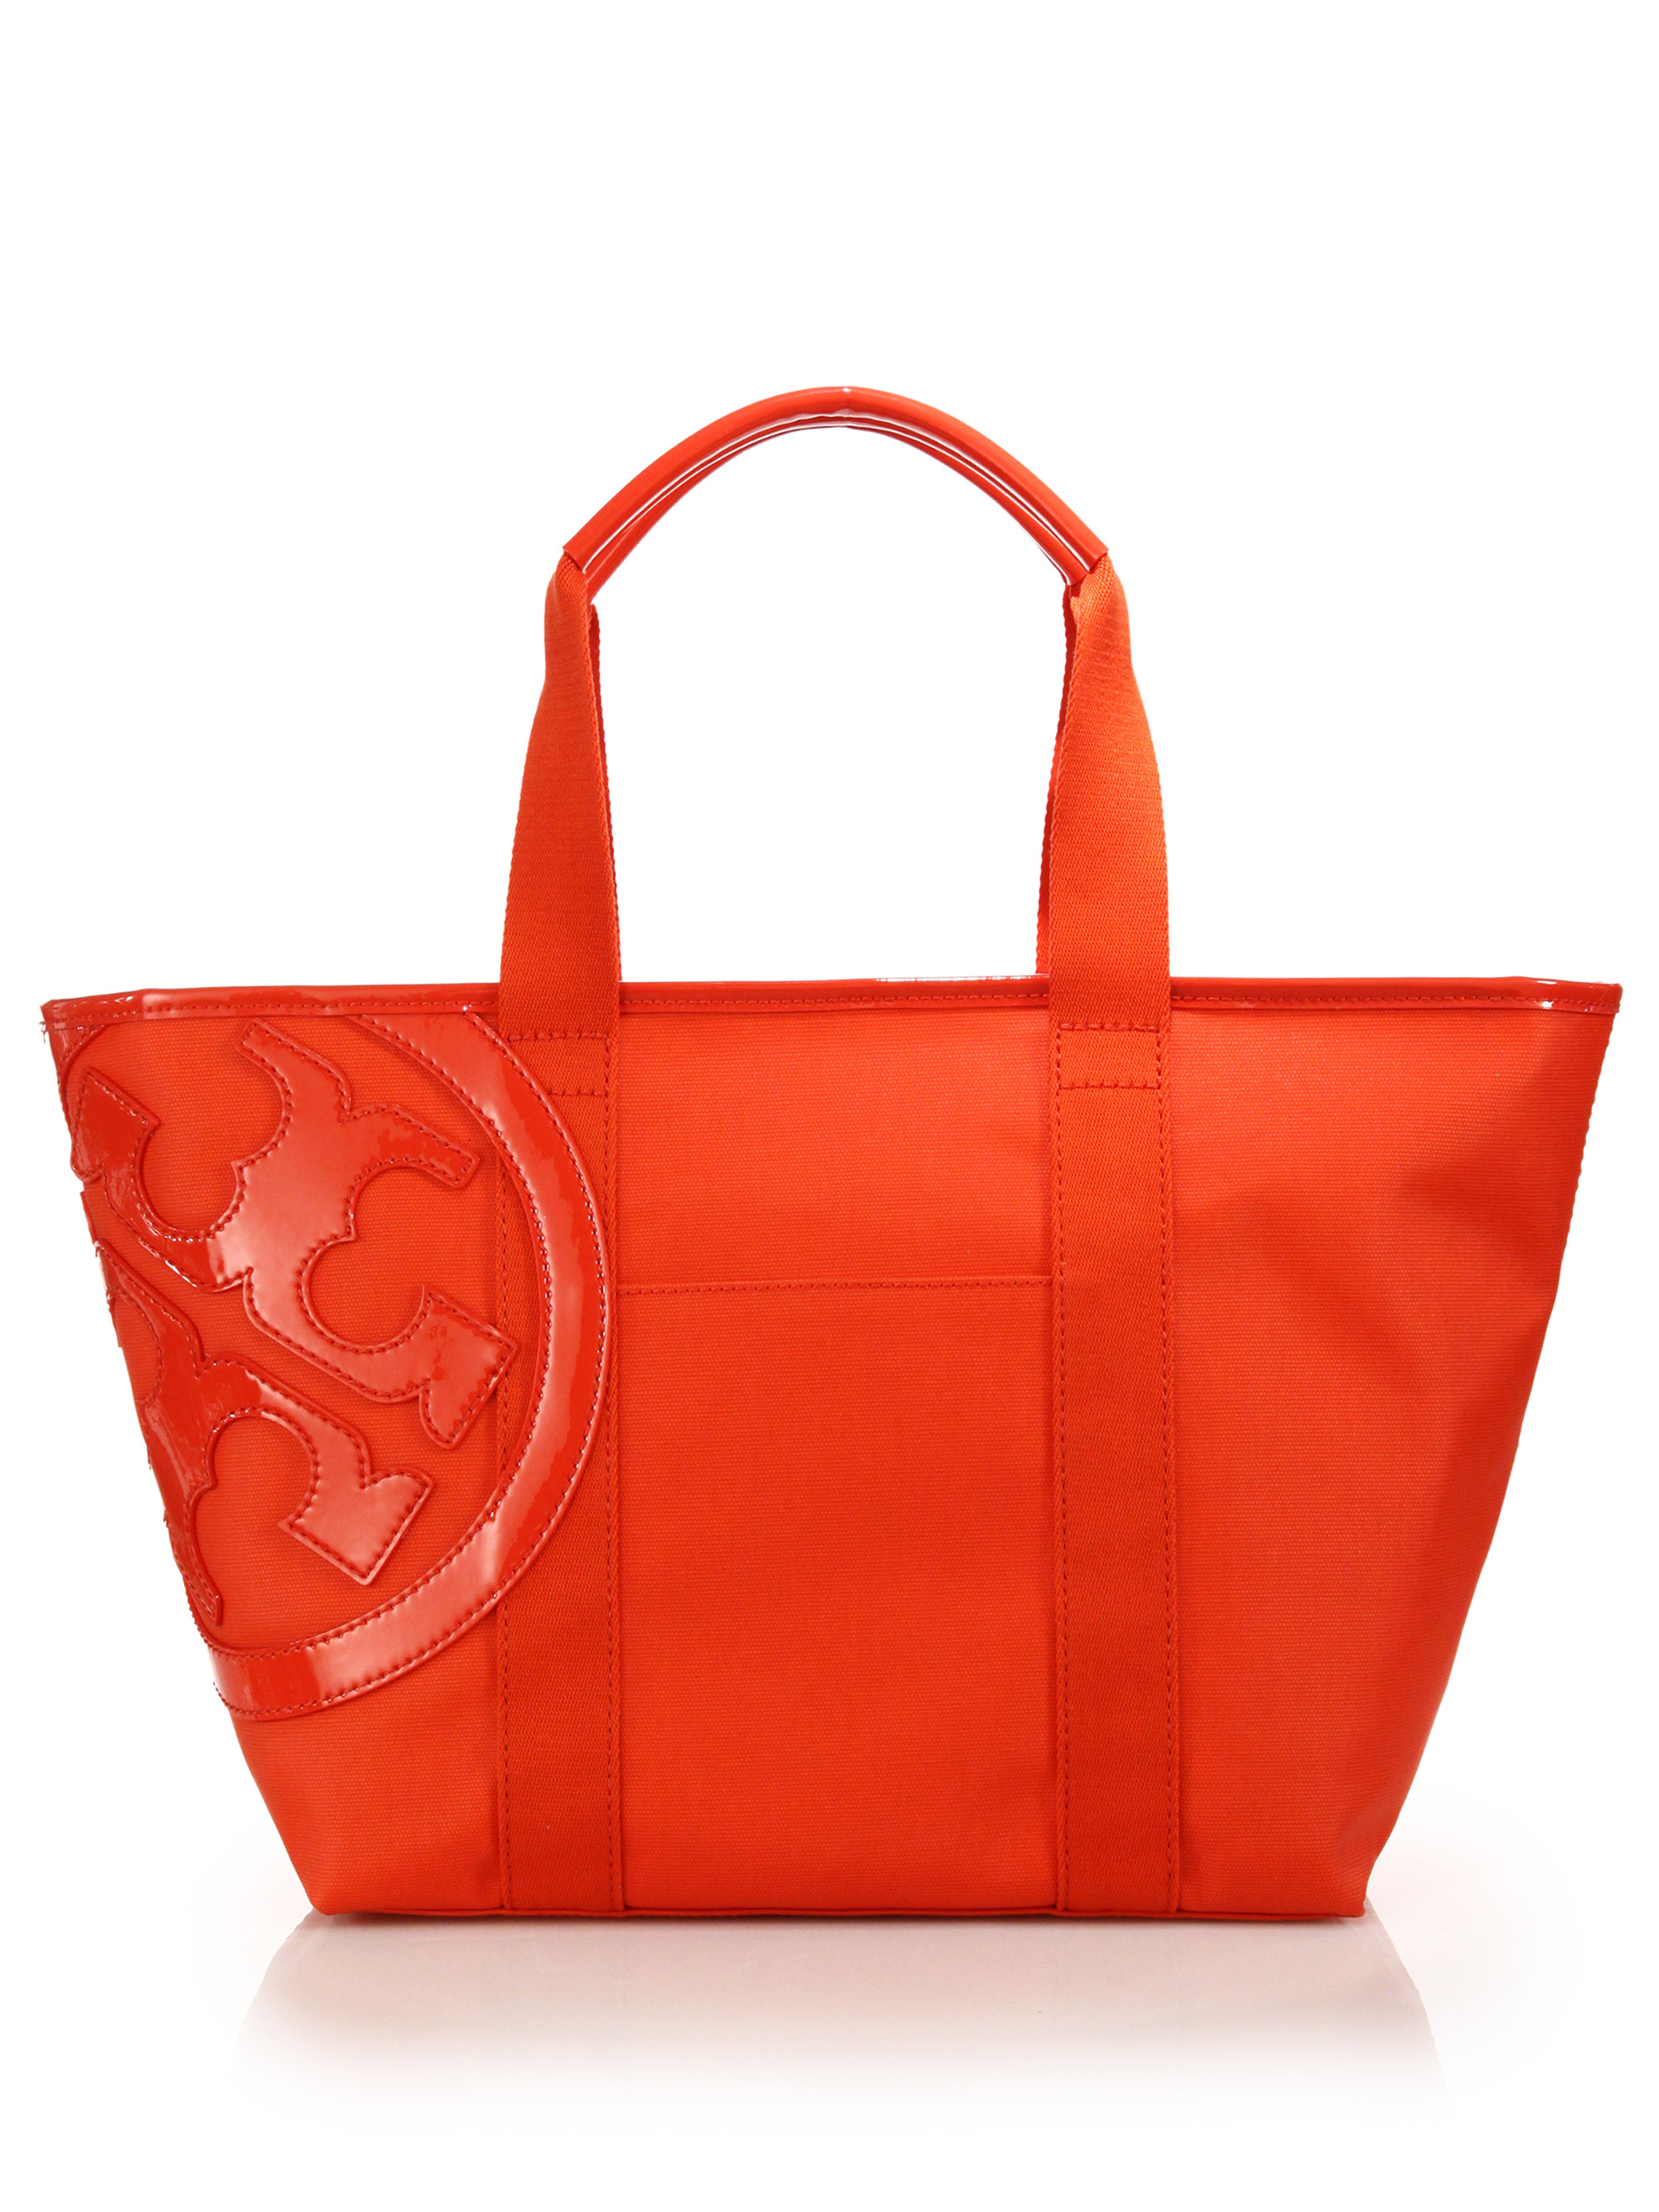 705af9bf365f Lyst - Tory Burch Small Beach Canvas Tote in Red